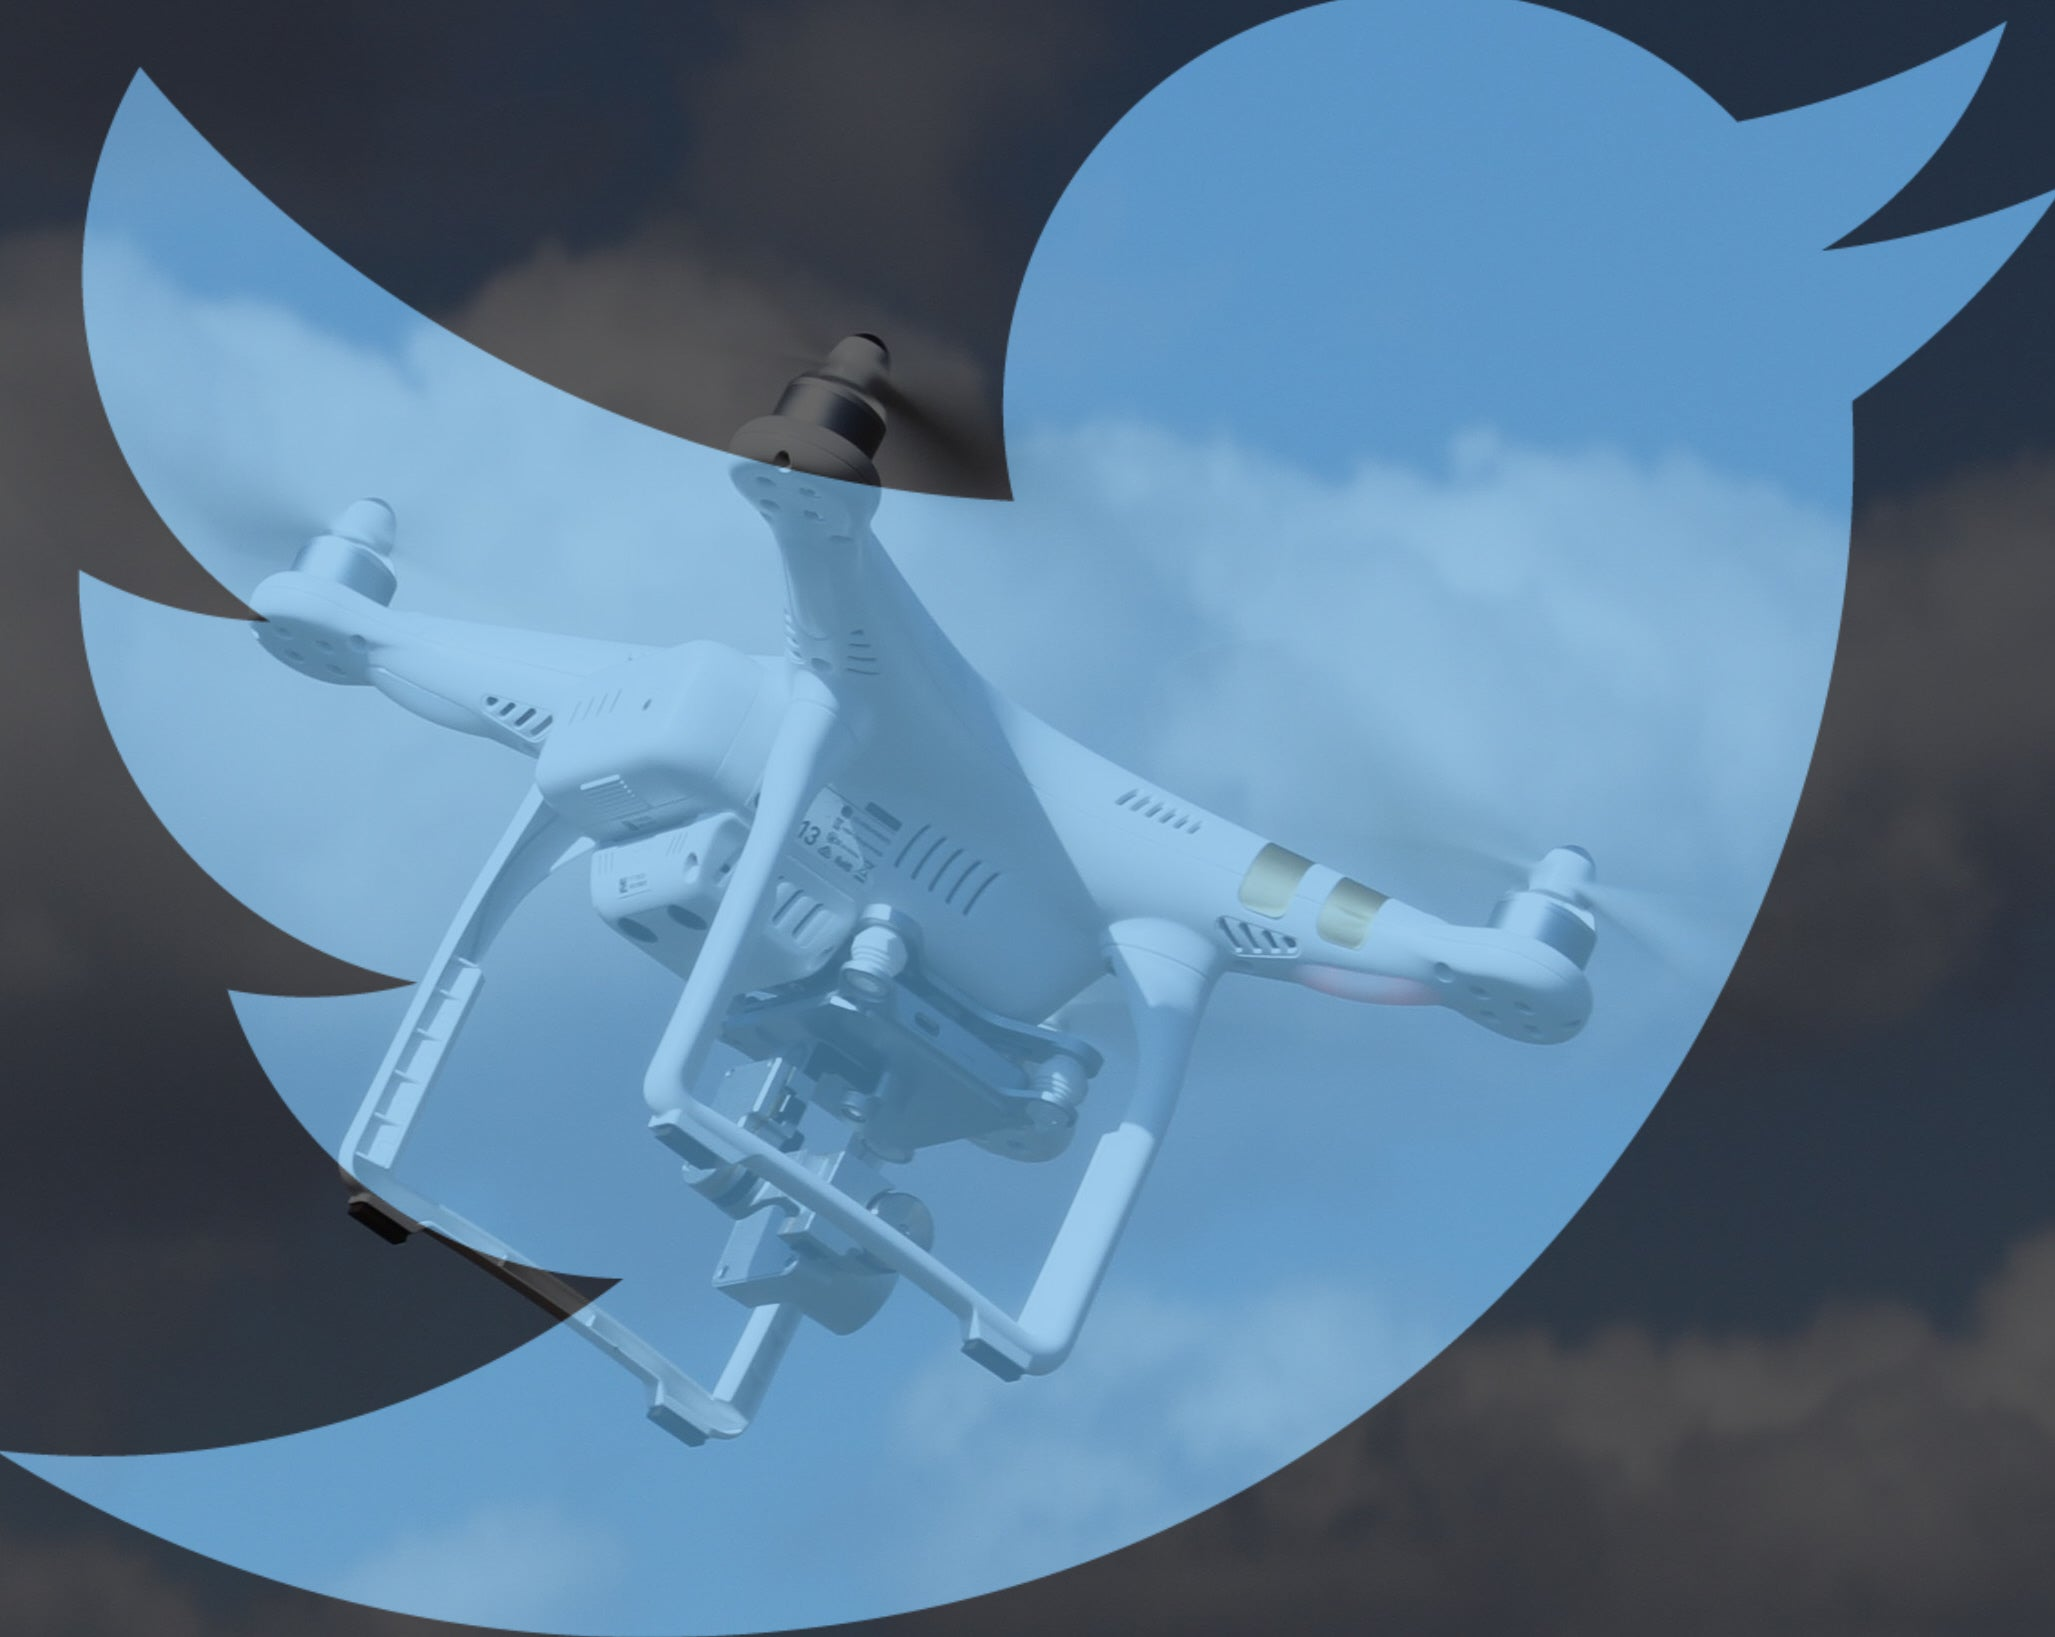 Twitter Just Patented Tweet-Piloted Drones